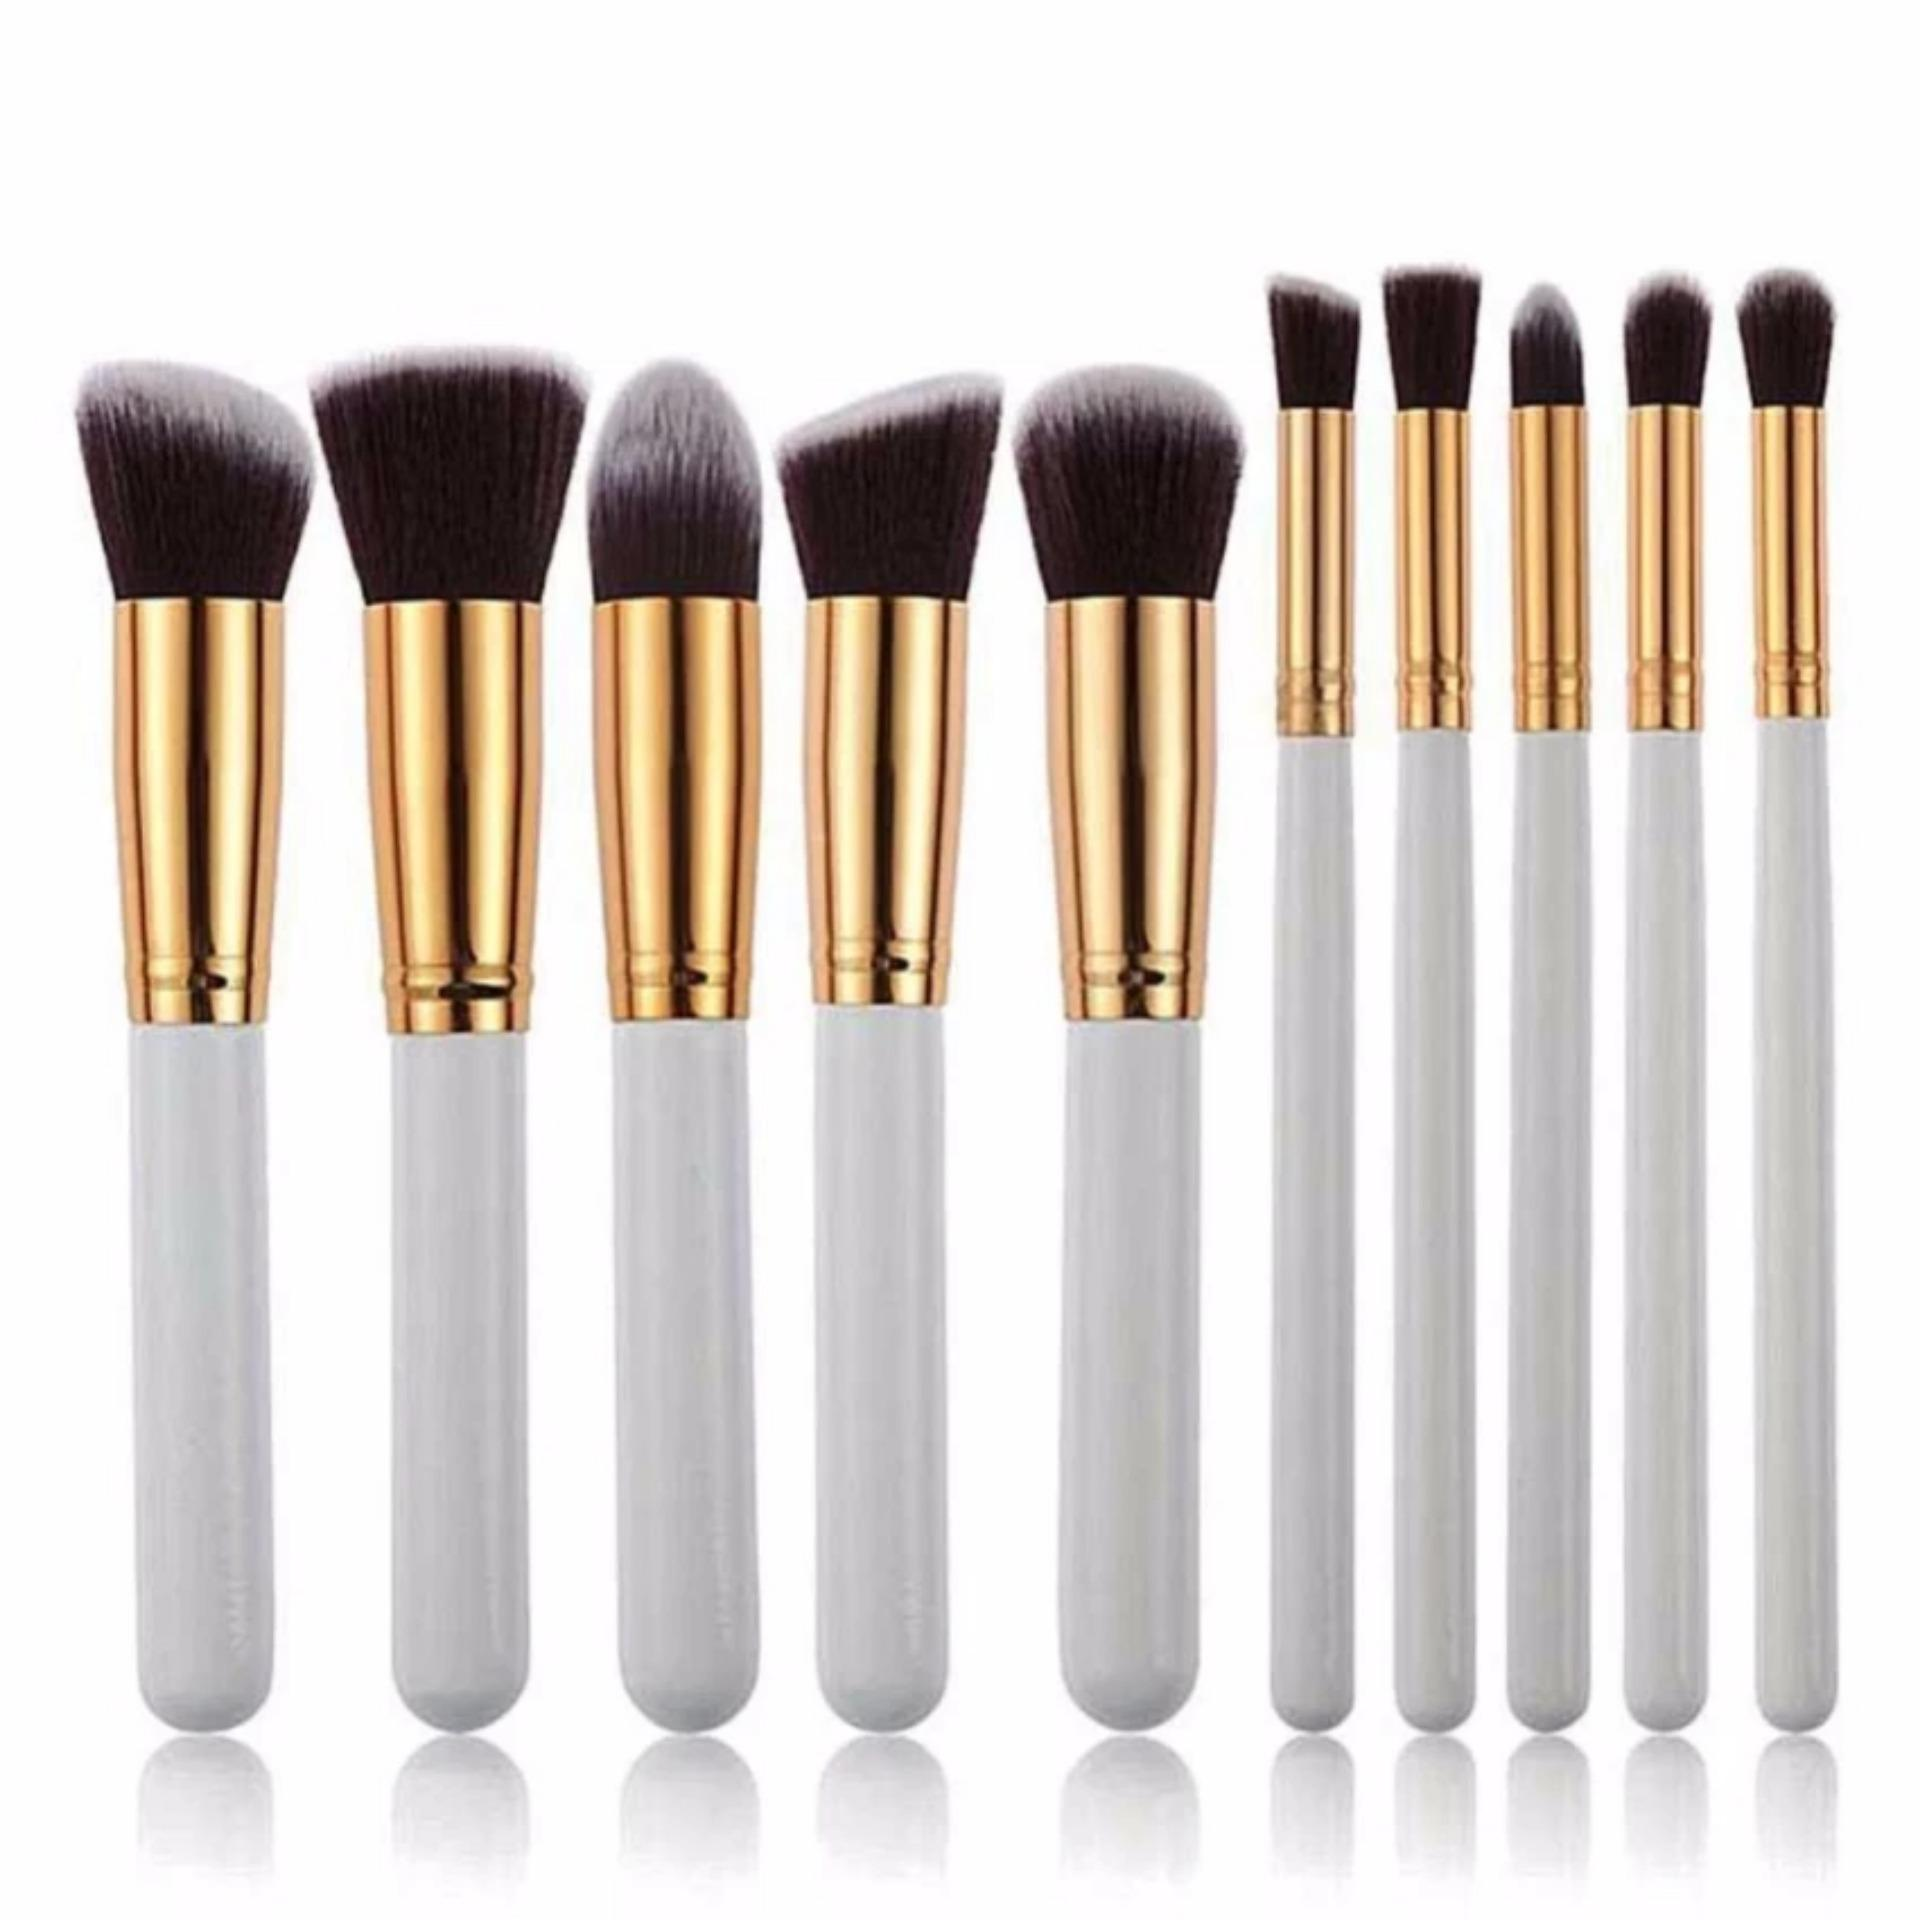 Miliki Segera Kuas Make Up Makeup Brush Putih Set 10 Pcs